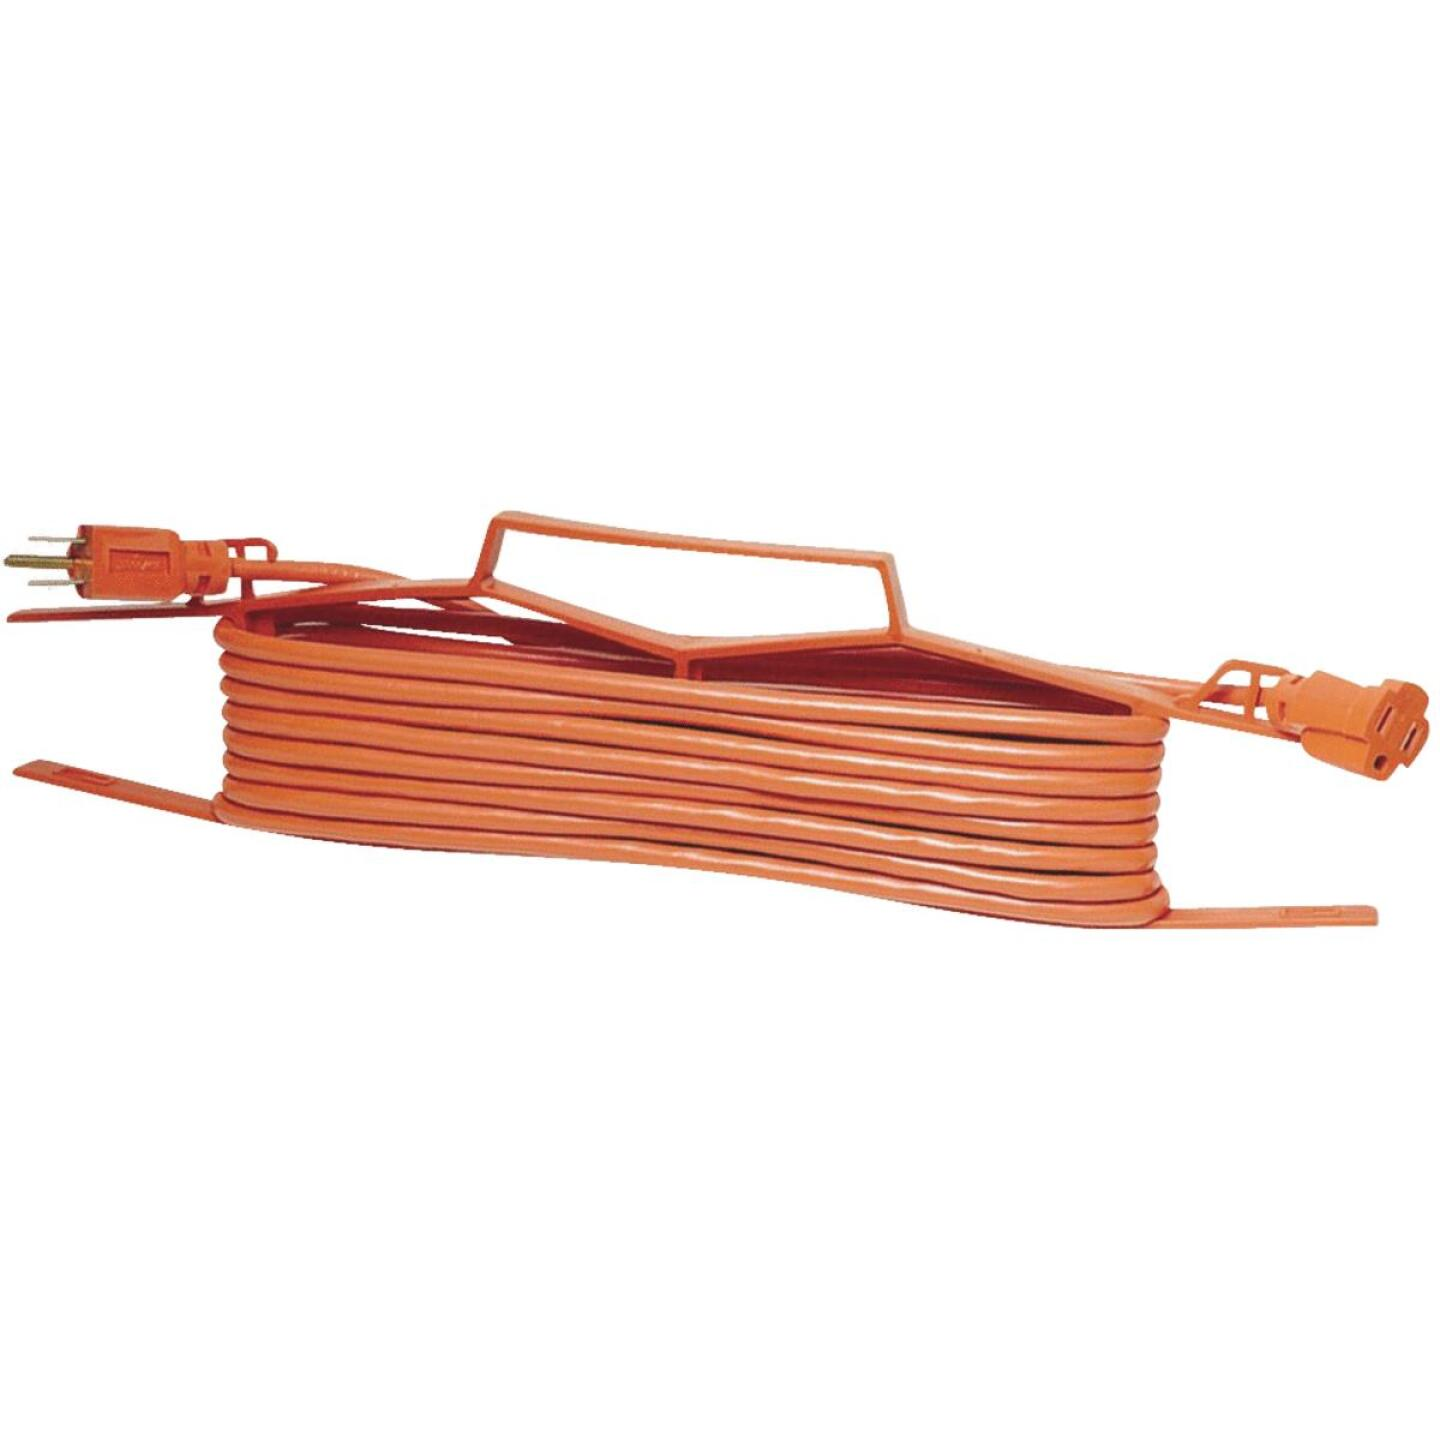 Bayco 15 In. x 15 In. Cord Wrap Image 2